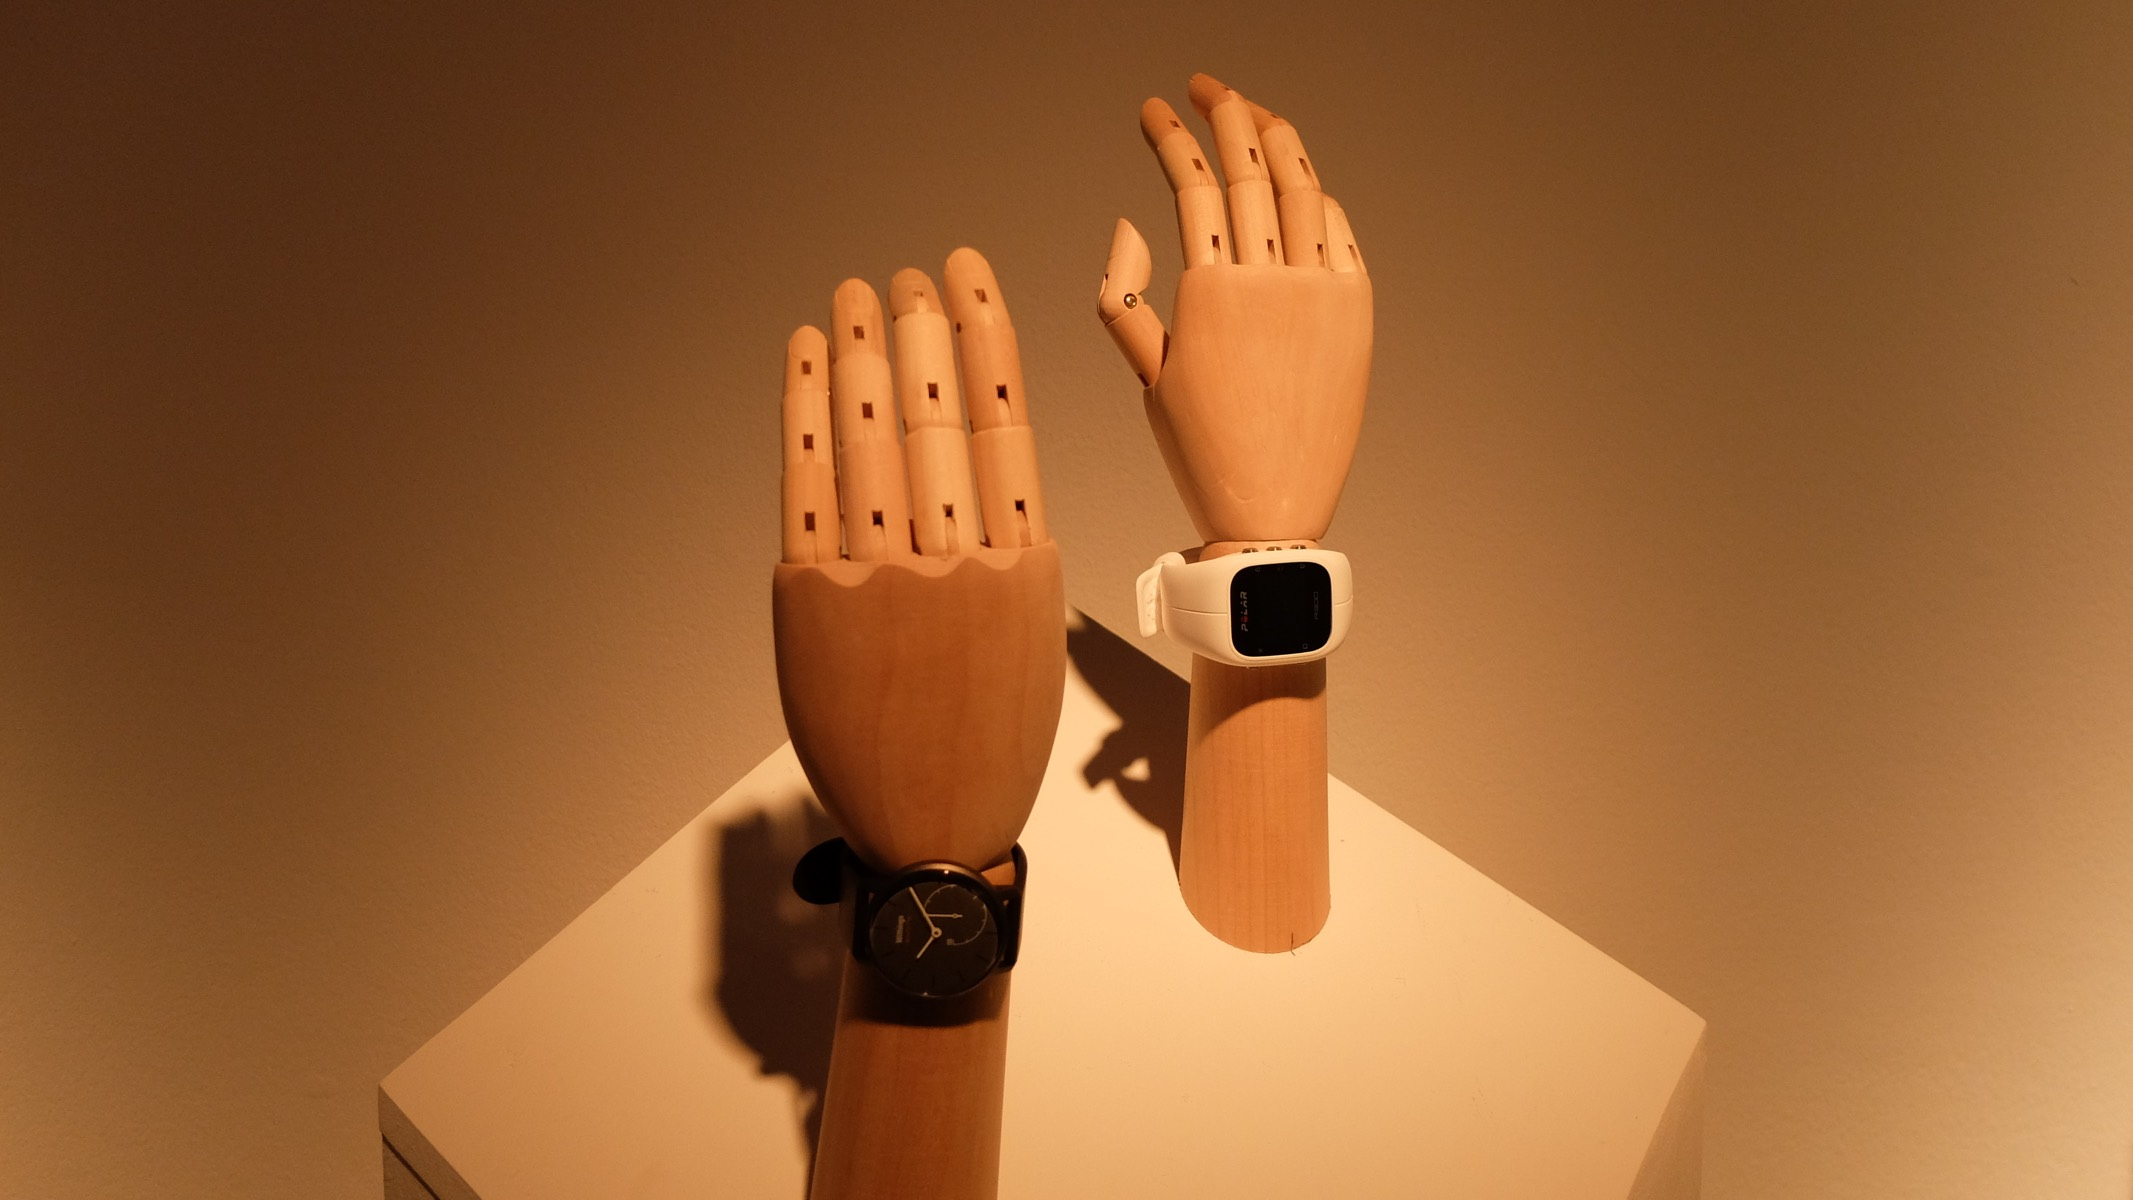 Amazon's Xmas wearables stock